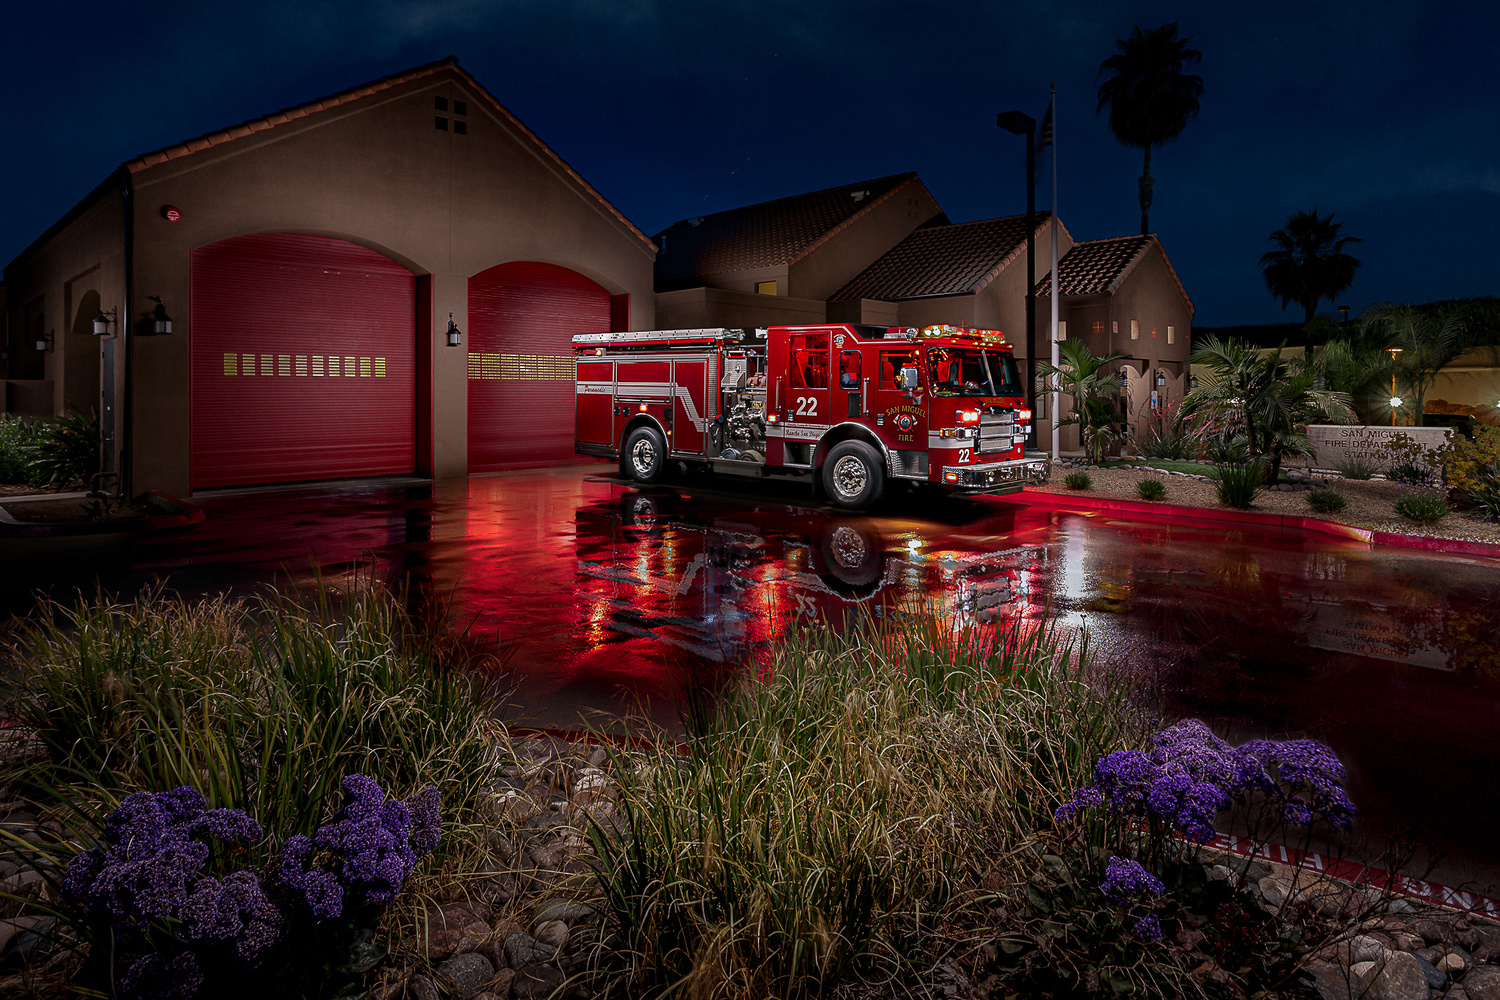 San Miguel Fire Station 22 by Creigh McIntyre